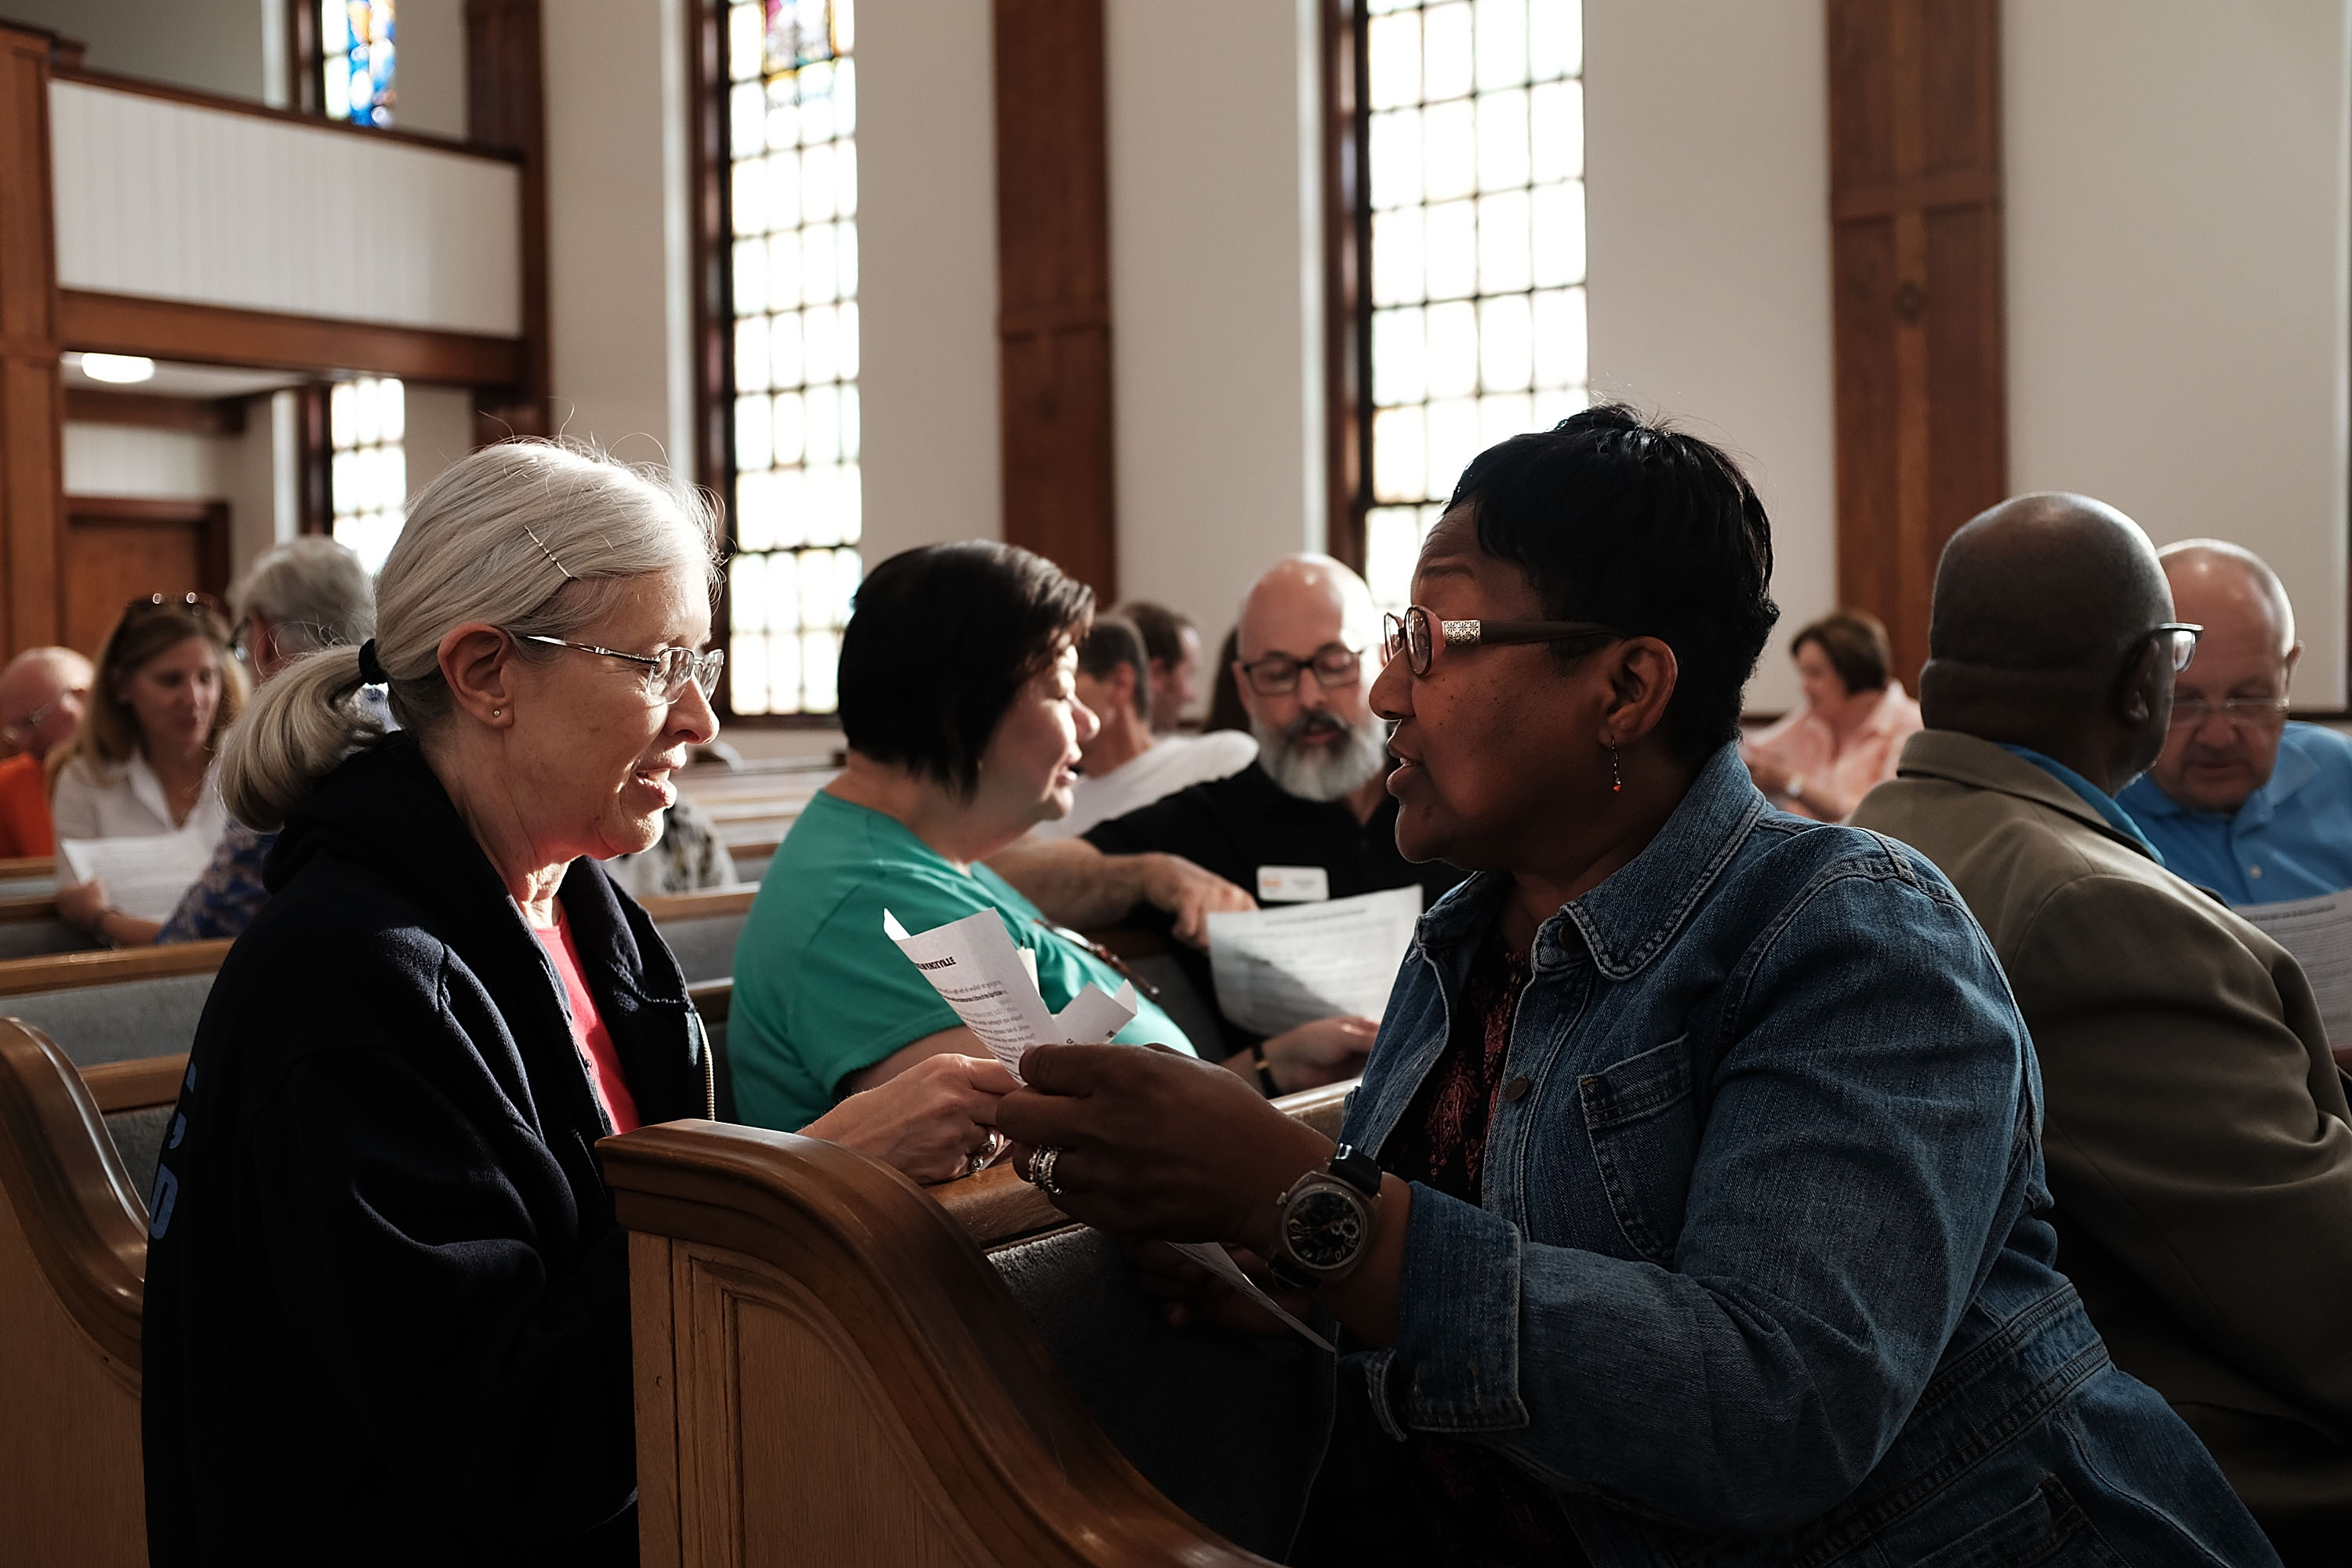 Knoxville residents participate in a service of prayers and hymns for peace in advance of a planned white supremacist rally and counter-protest around a Confederate memorial monument on August 25, 2017 in Knoxville, Tennessee.